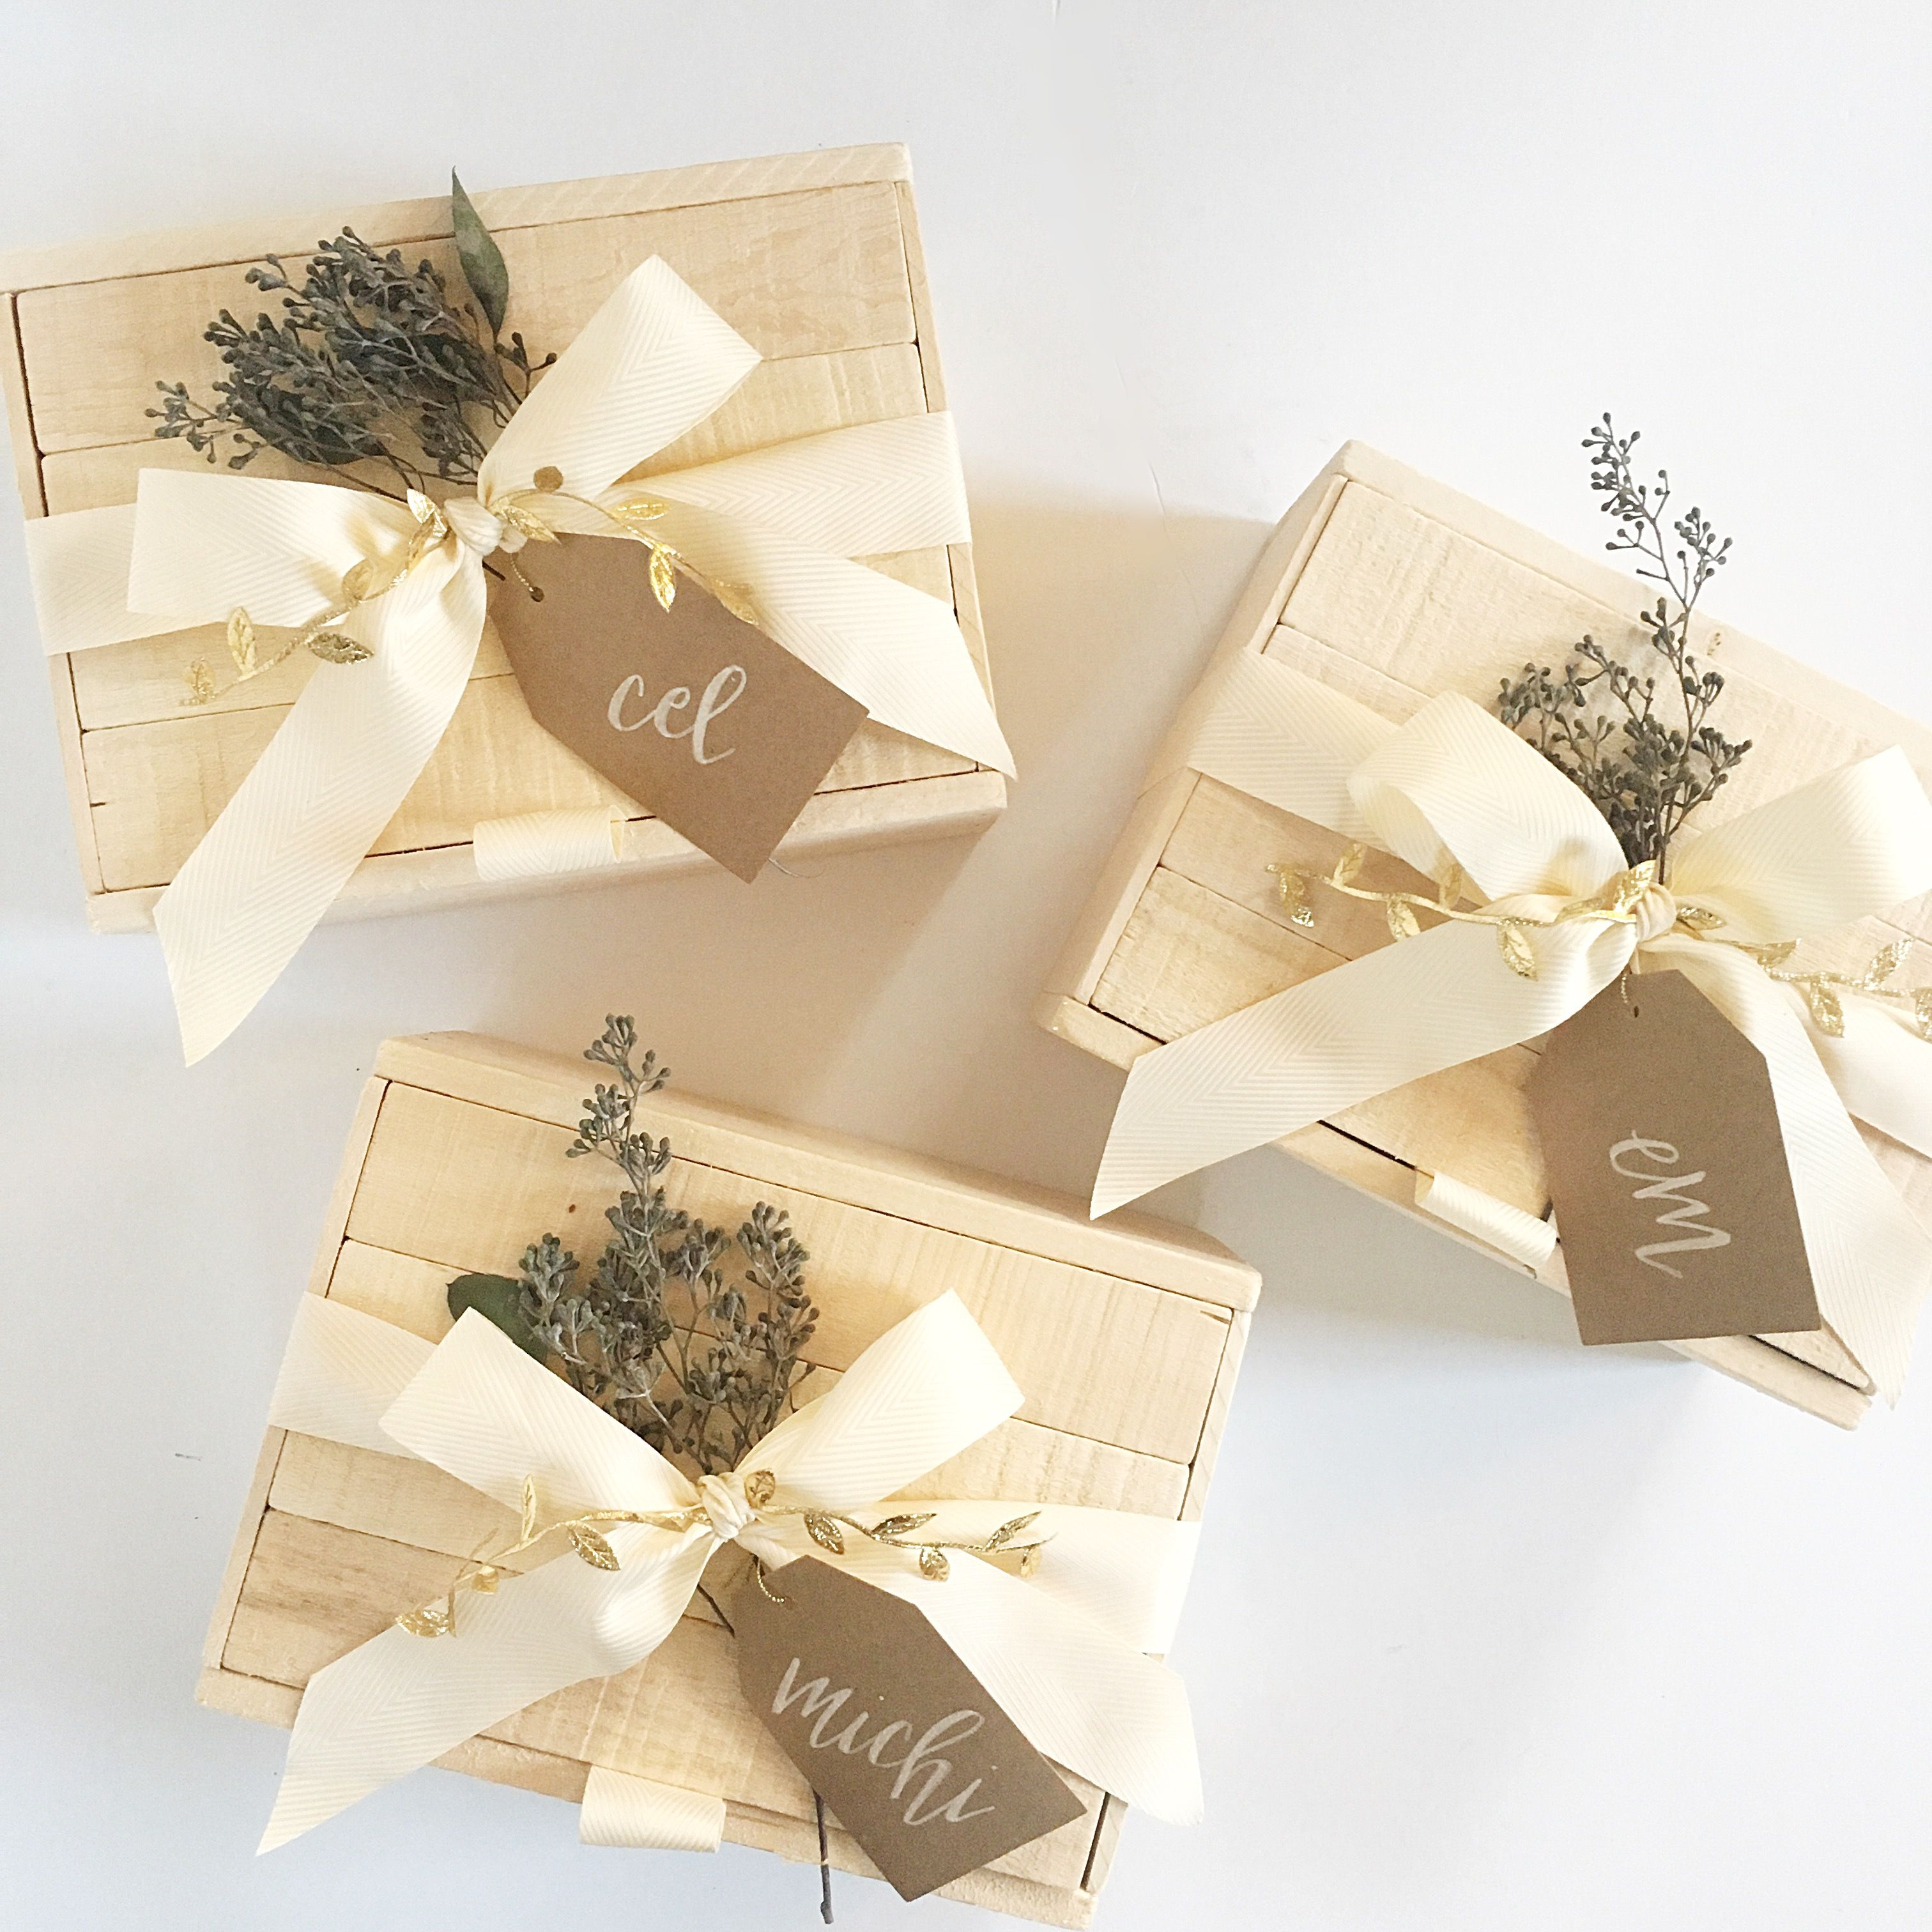 Wooden gift box packaging with calligraphy tag by Box and